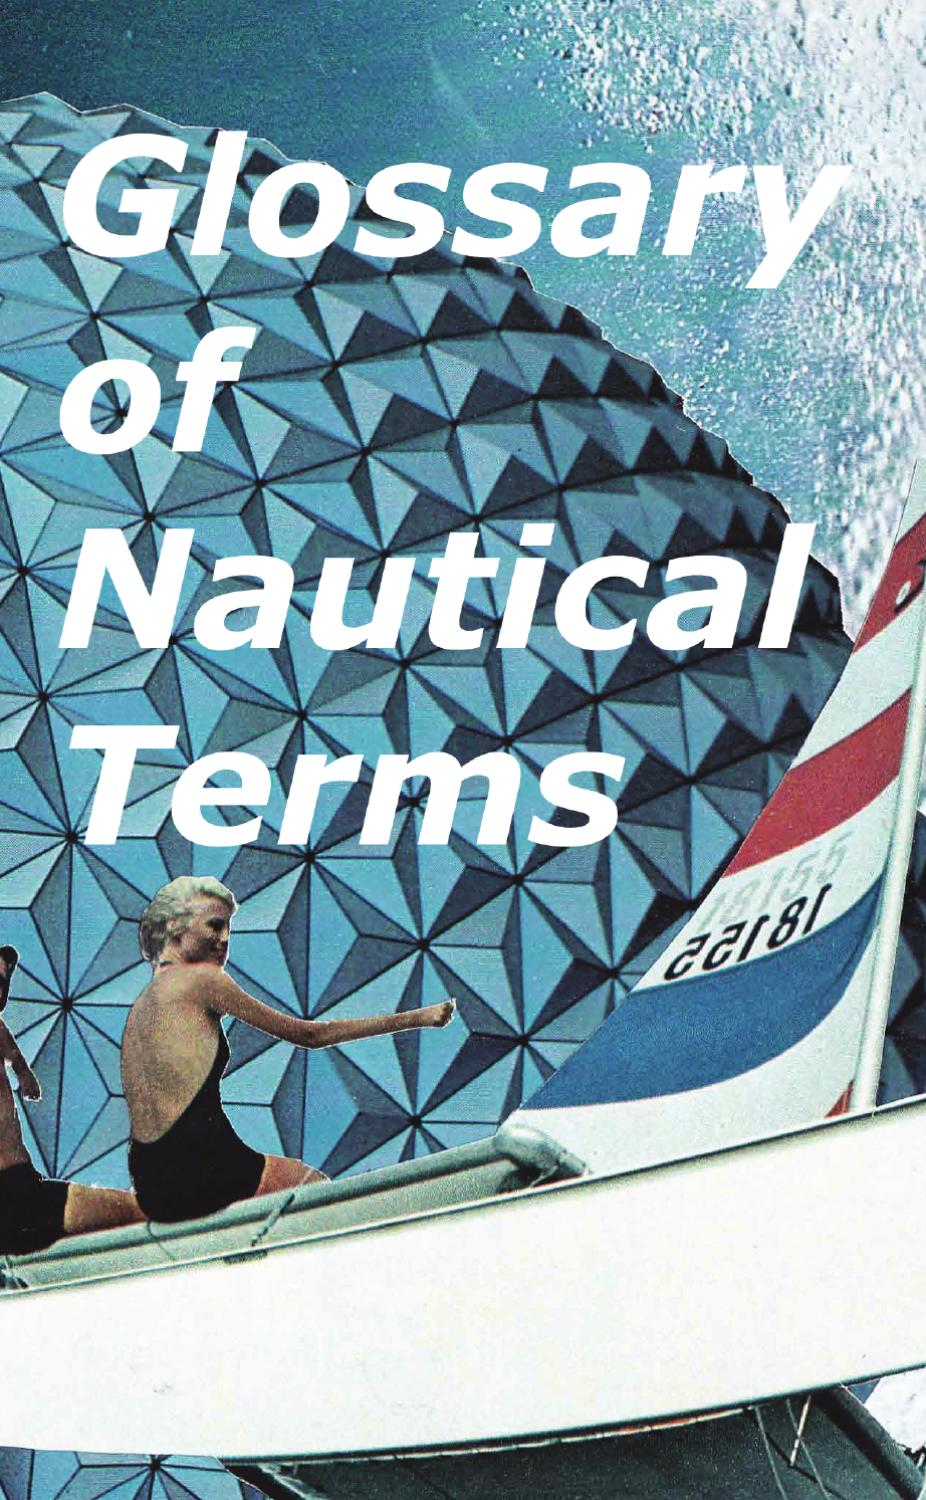 What does the nautical term